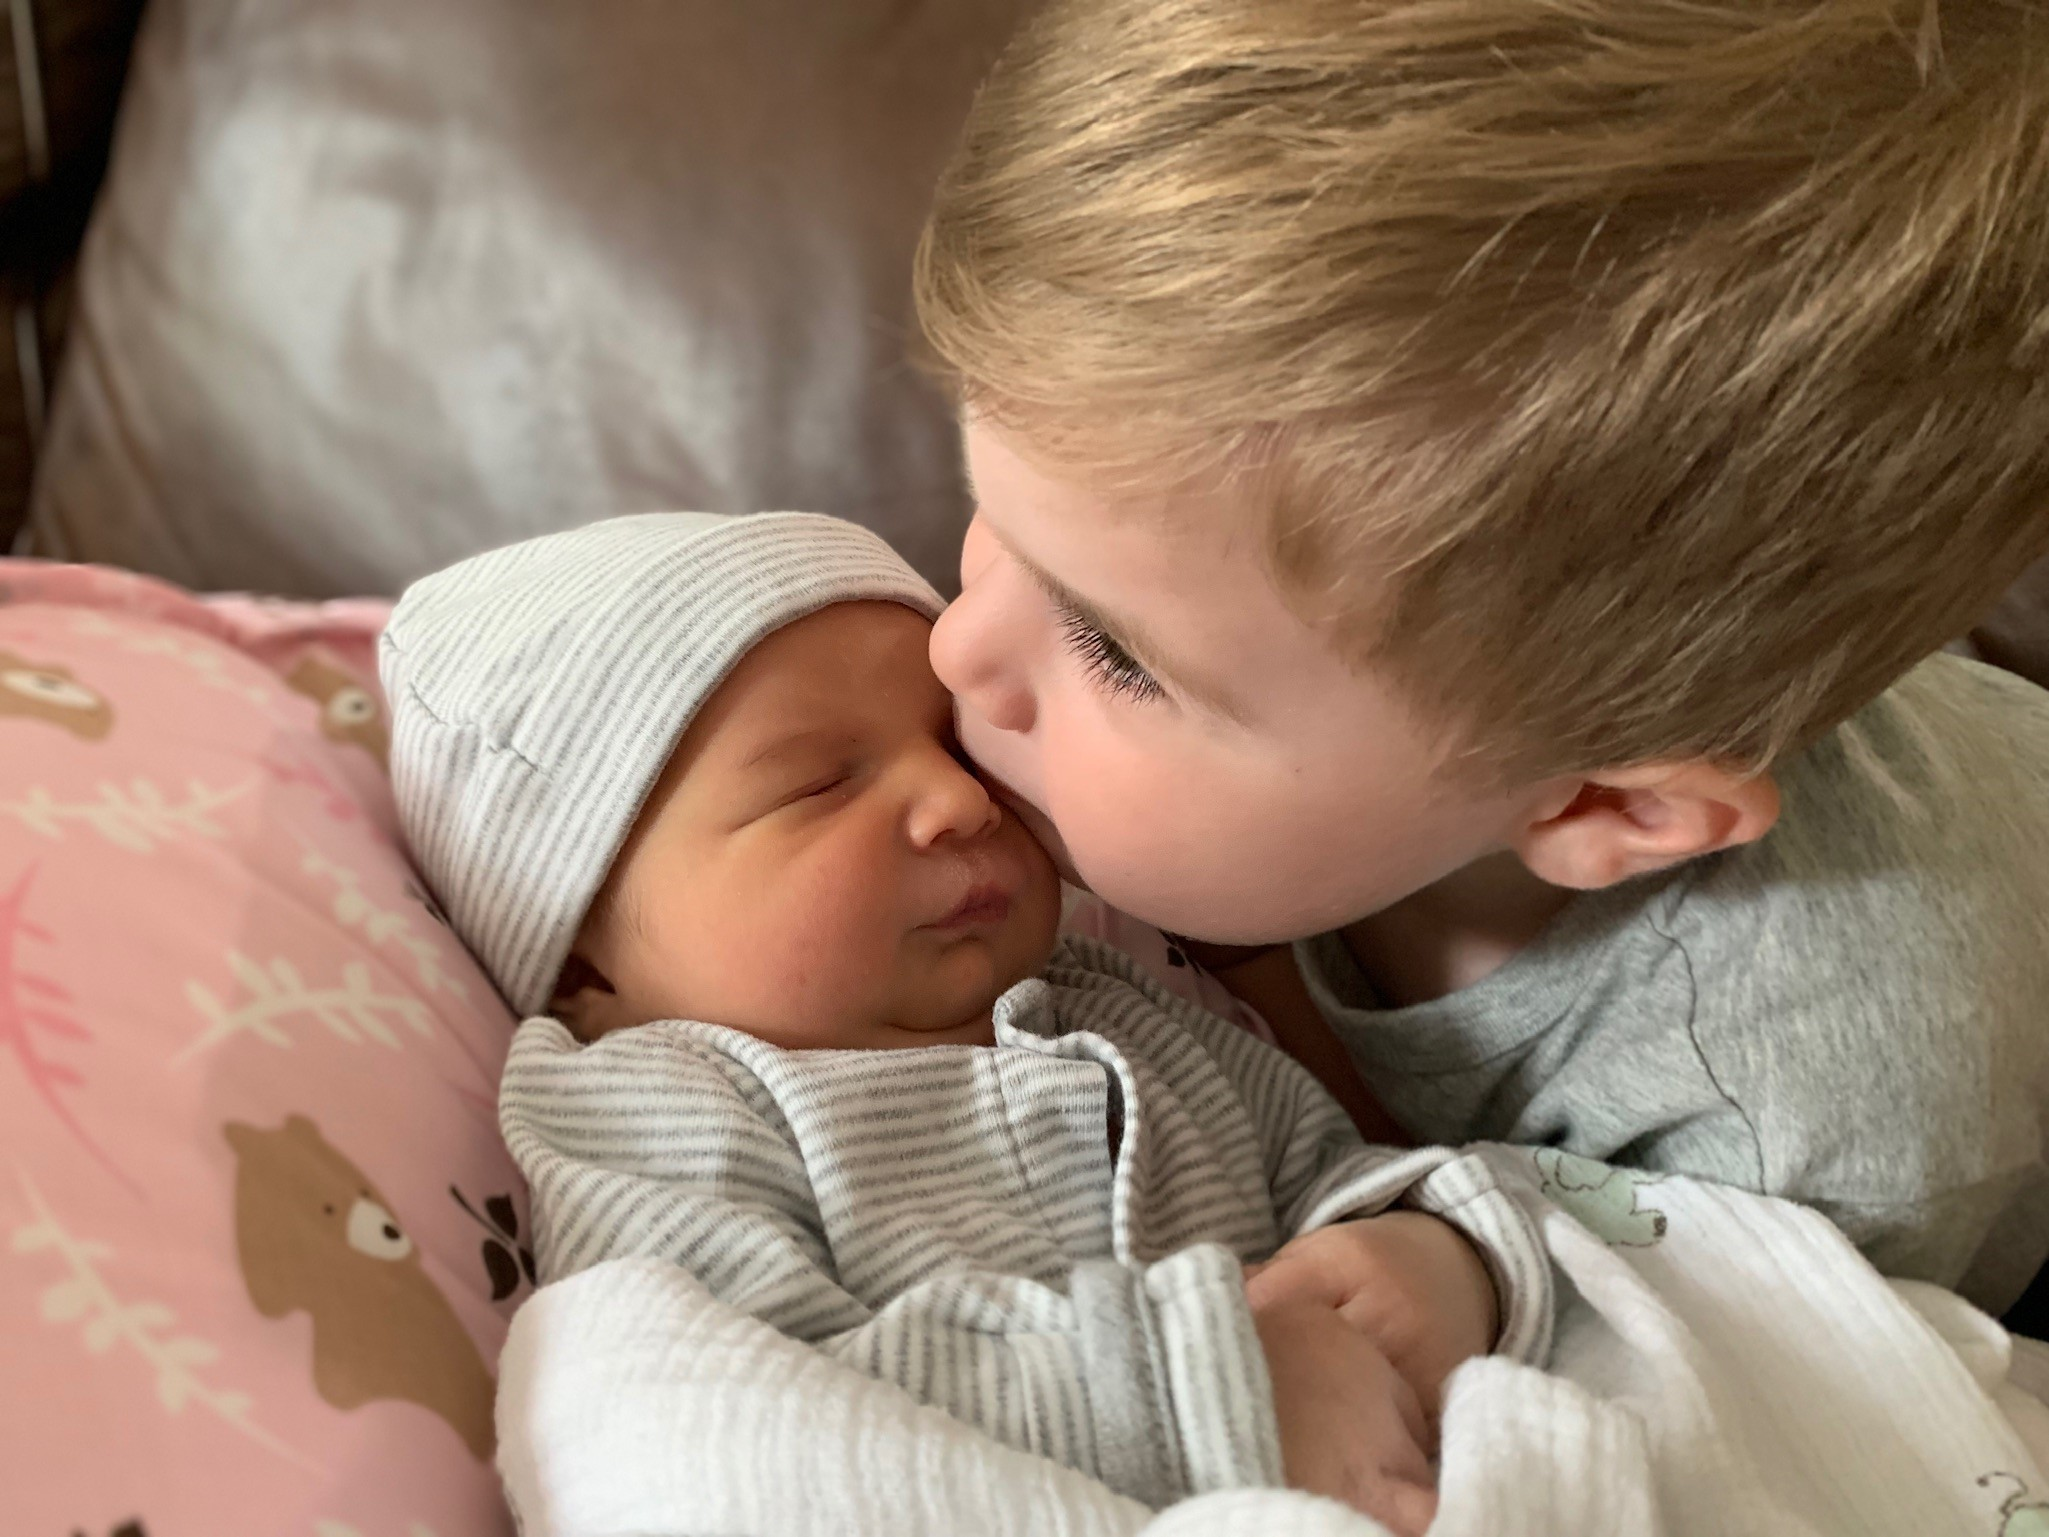 Graham Meade, 3, kisses his sister, Cameron Meade, who was born Aug. 23, 2019.